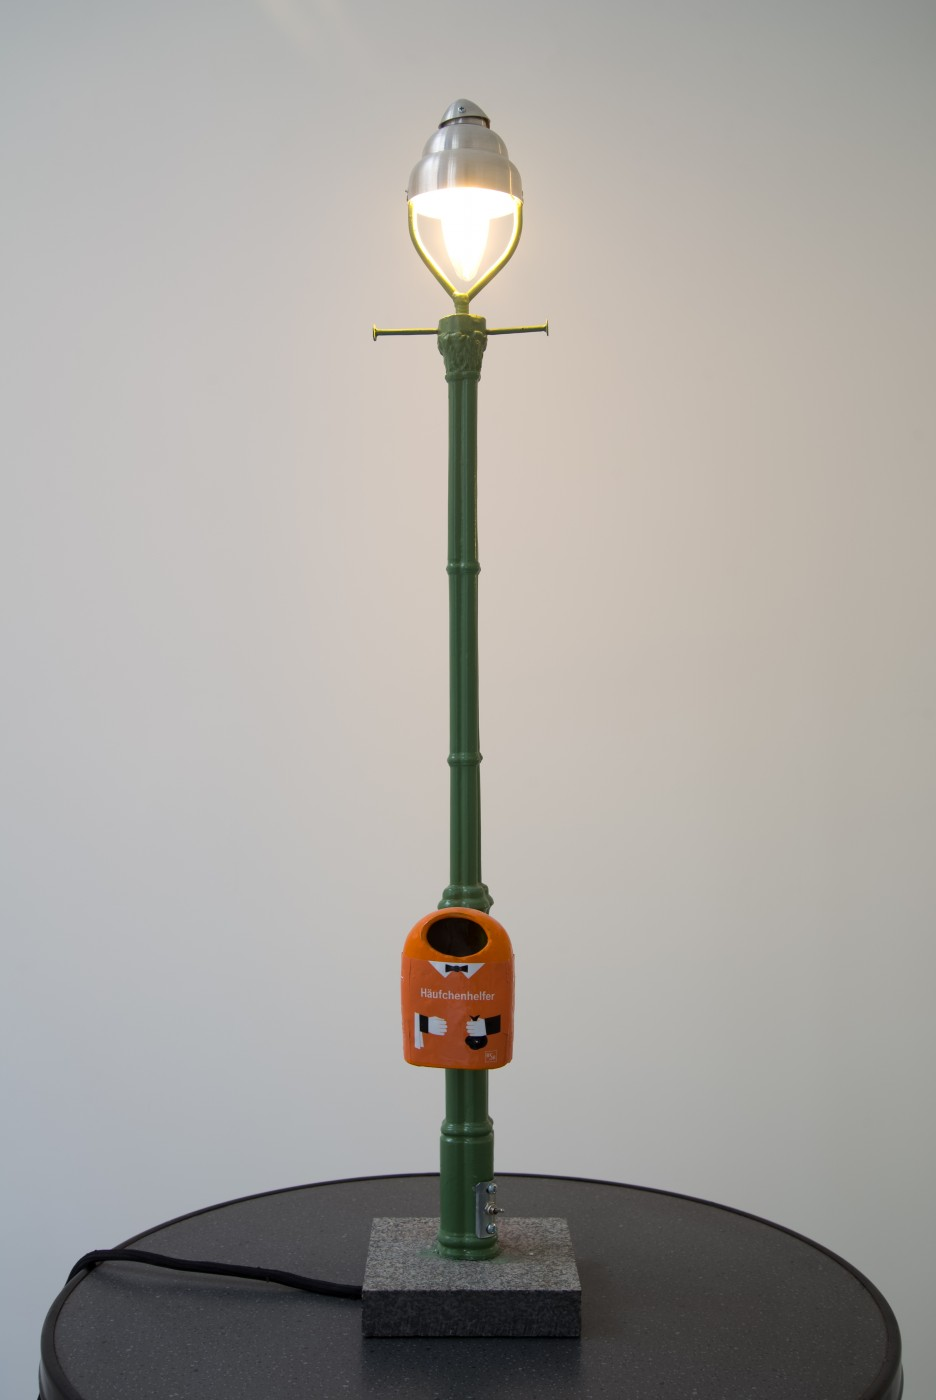 I&#8217;m Nobody! Pentti Monkkonen  Berlin Street Lamp (Häufchenhelfer)</I>, 2017 Steel, anodized aluminum, granite, paint, decal, electrical components 116 x 49 x 49 cm / 45.6 x 19.2 x 19.2 in